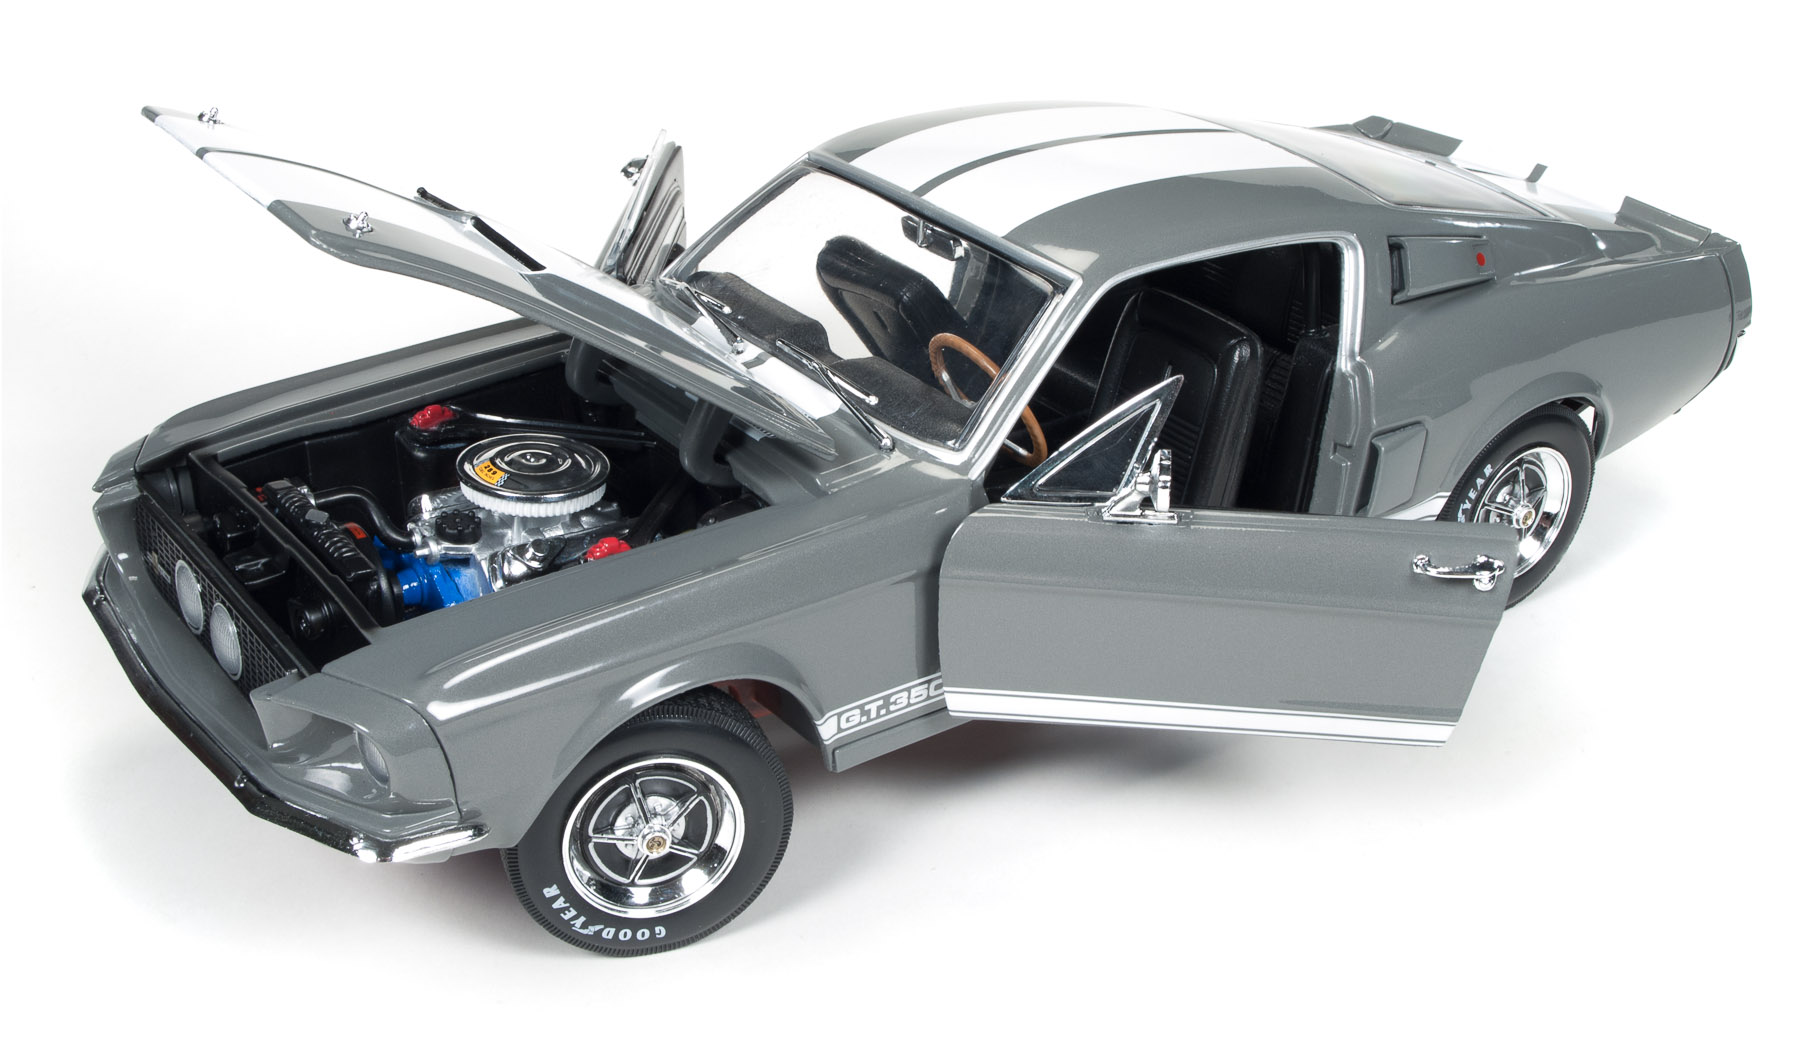 1967 Shelby Mustang Gt350 50th Anniversary Round2